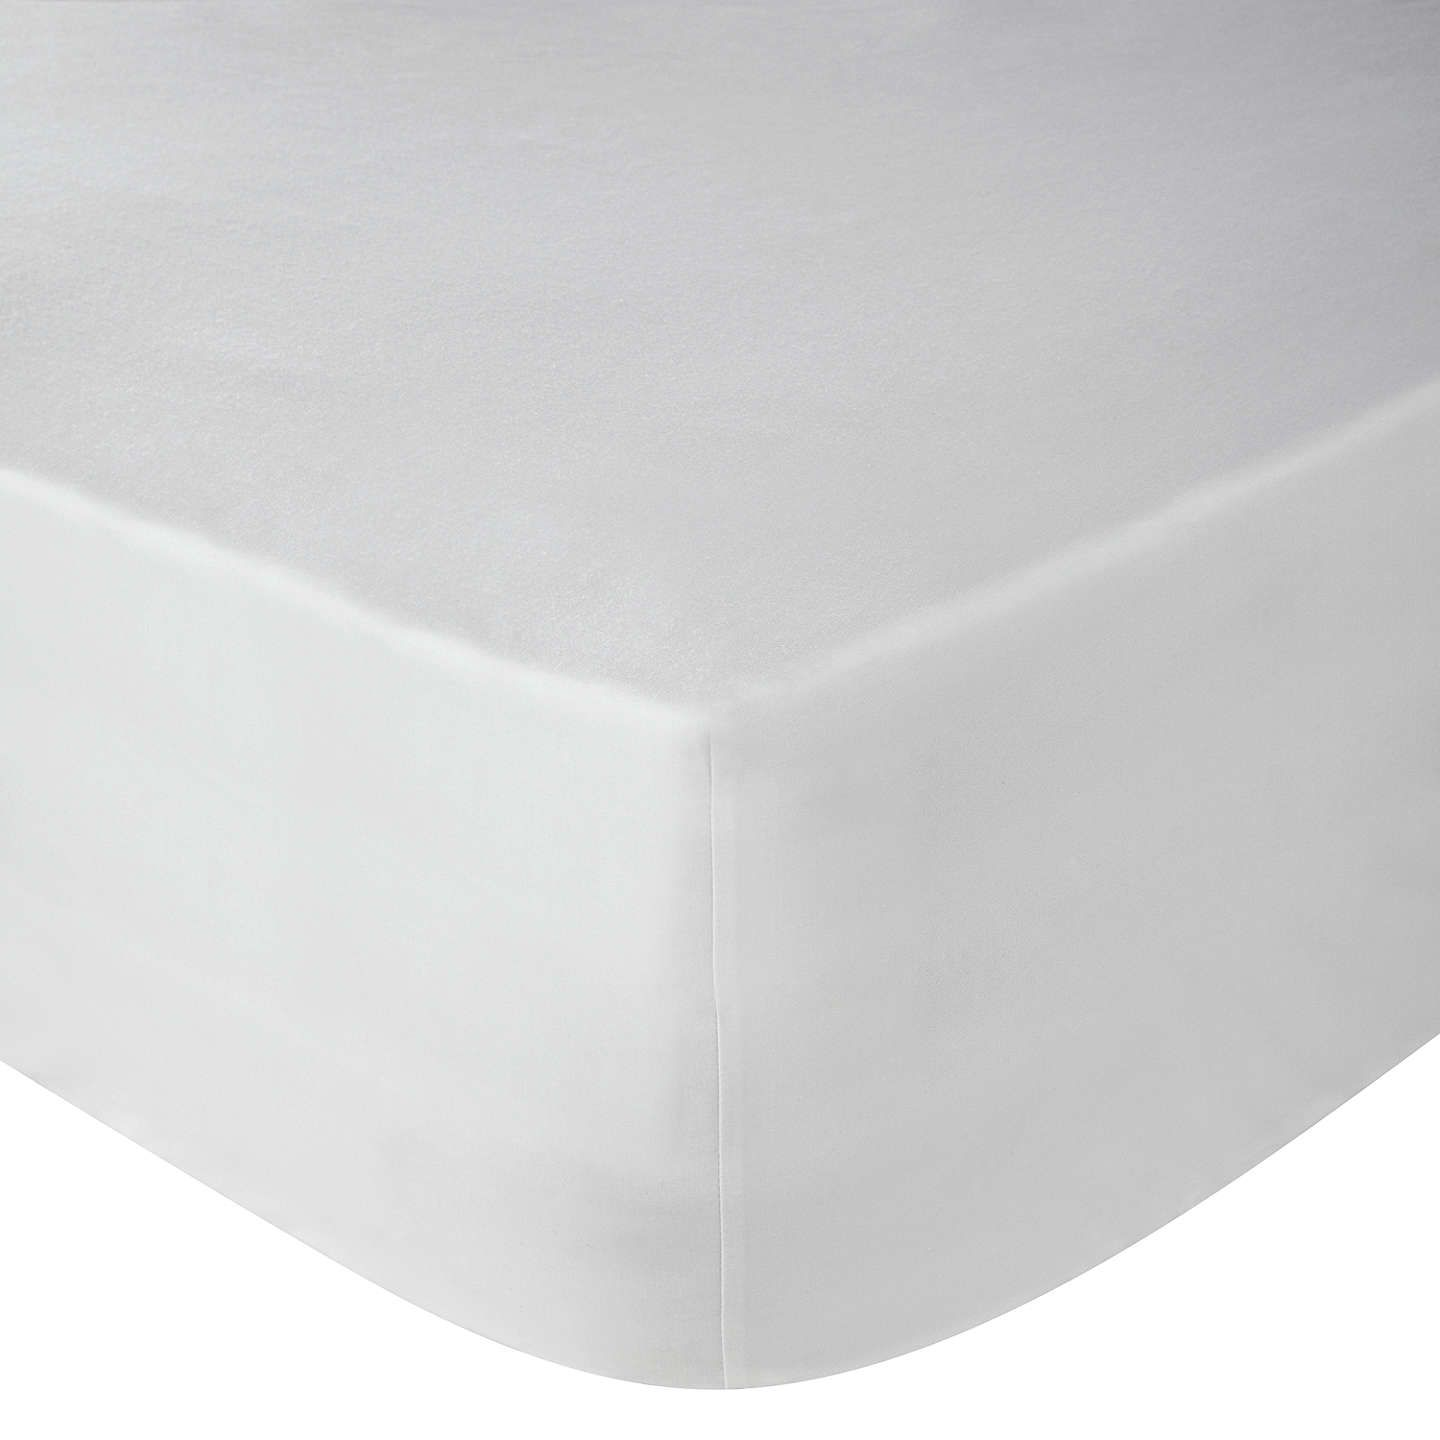 John lewis perfectly smooth thread count egyptian cotton